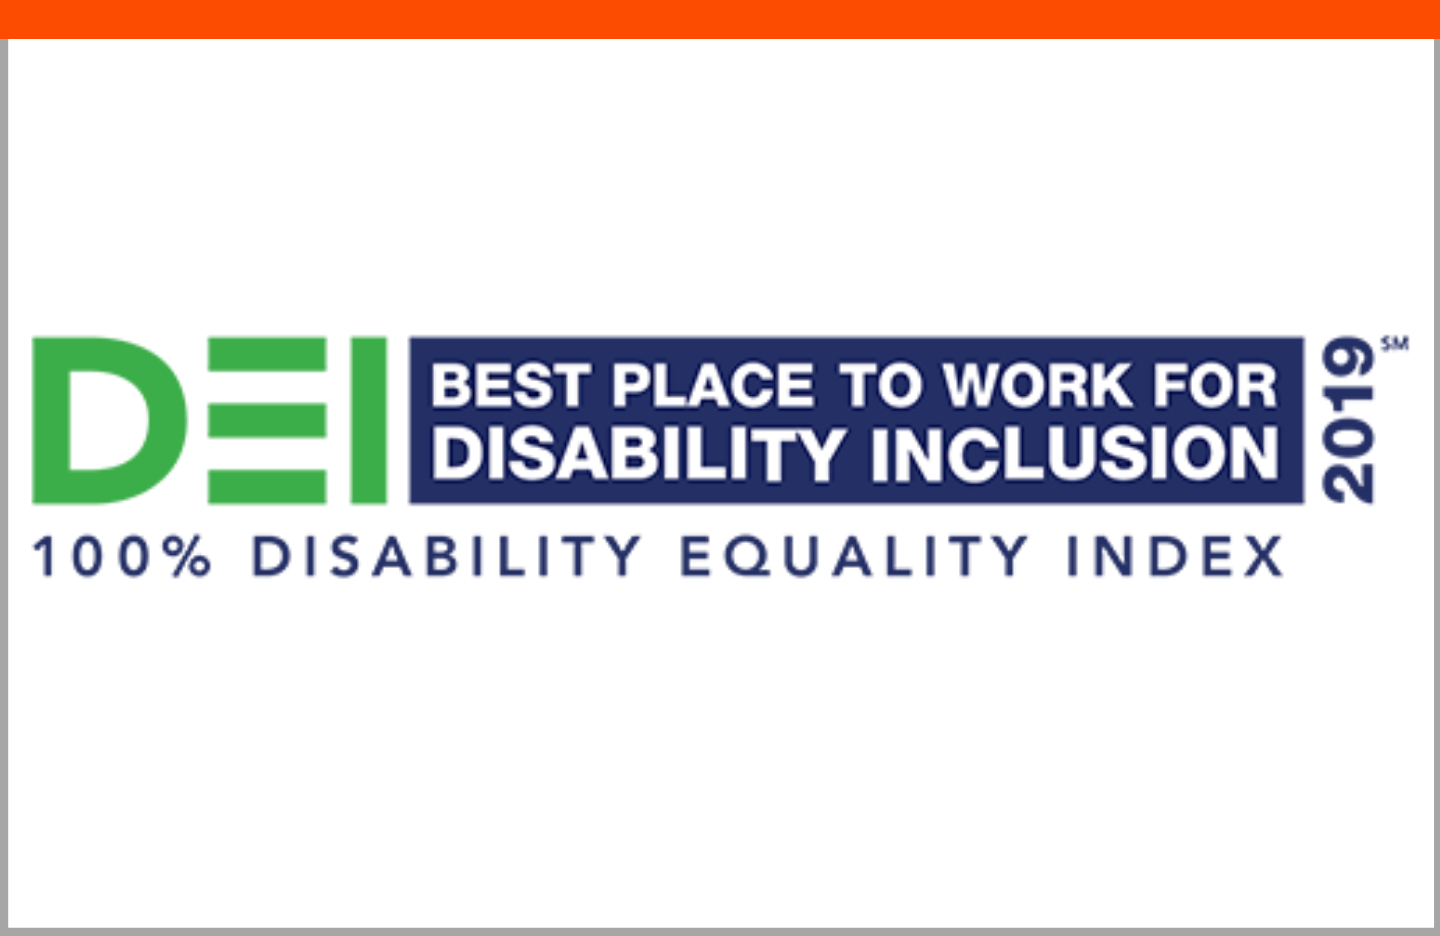 Best Place to Work for Disability Inclusion 2019 by the Disability Equality Index